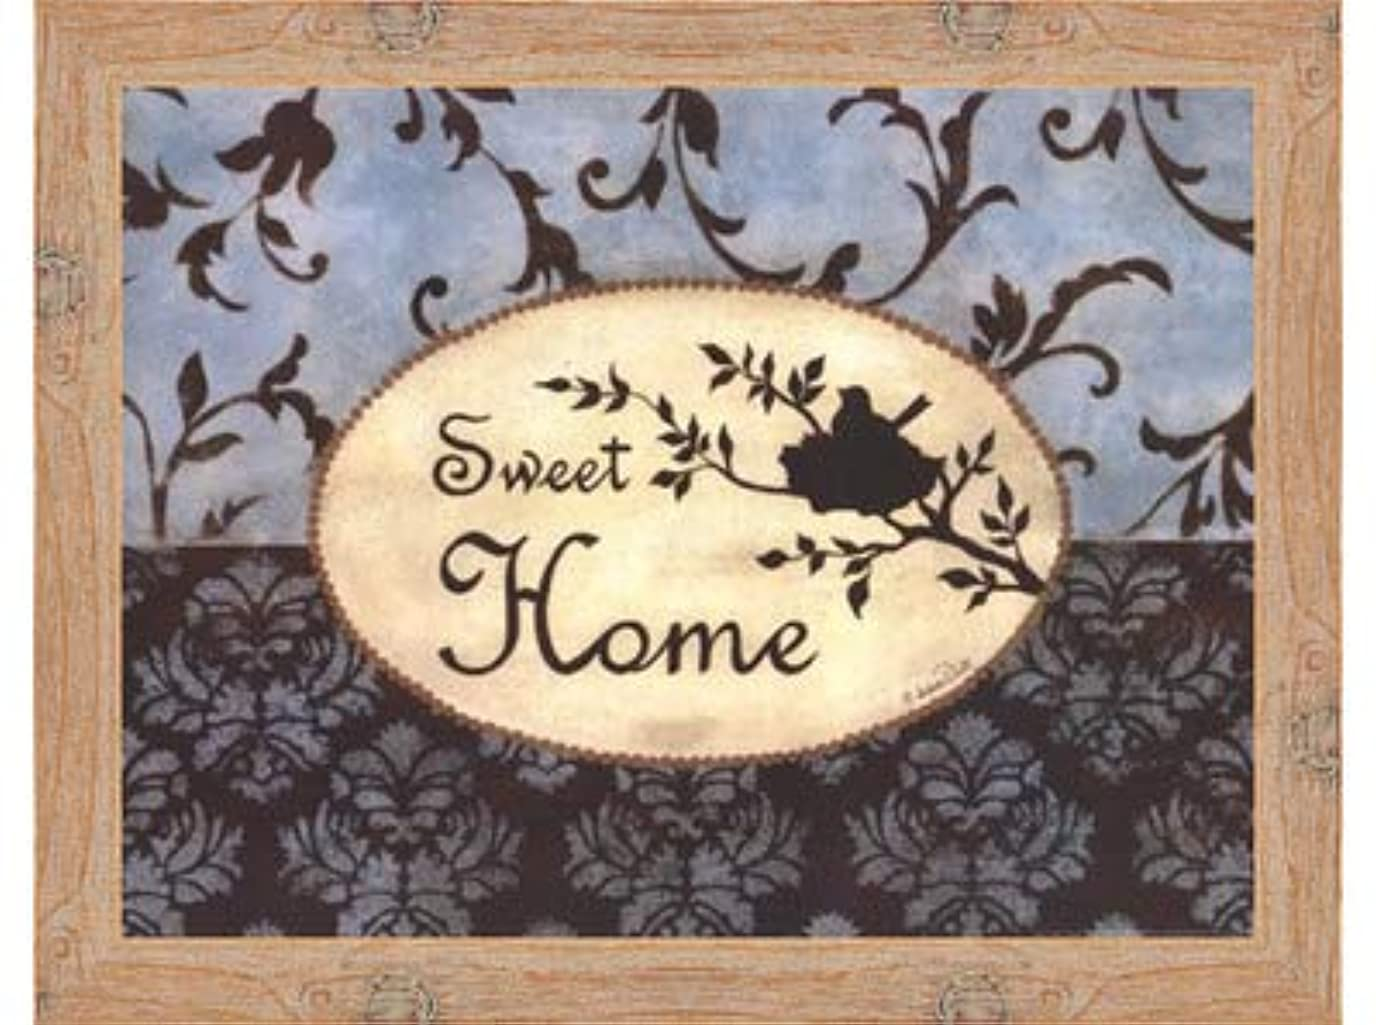 Sweet Home by Andrea Roberts – 16 x 12インチ – アートプリントポスター LE_665221-F10902-16x12